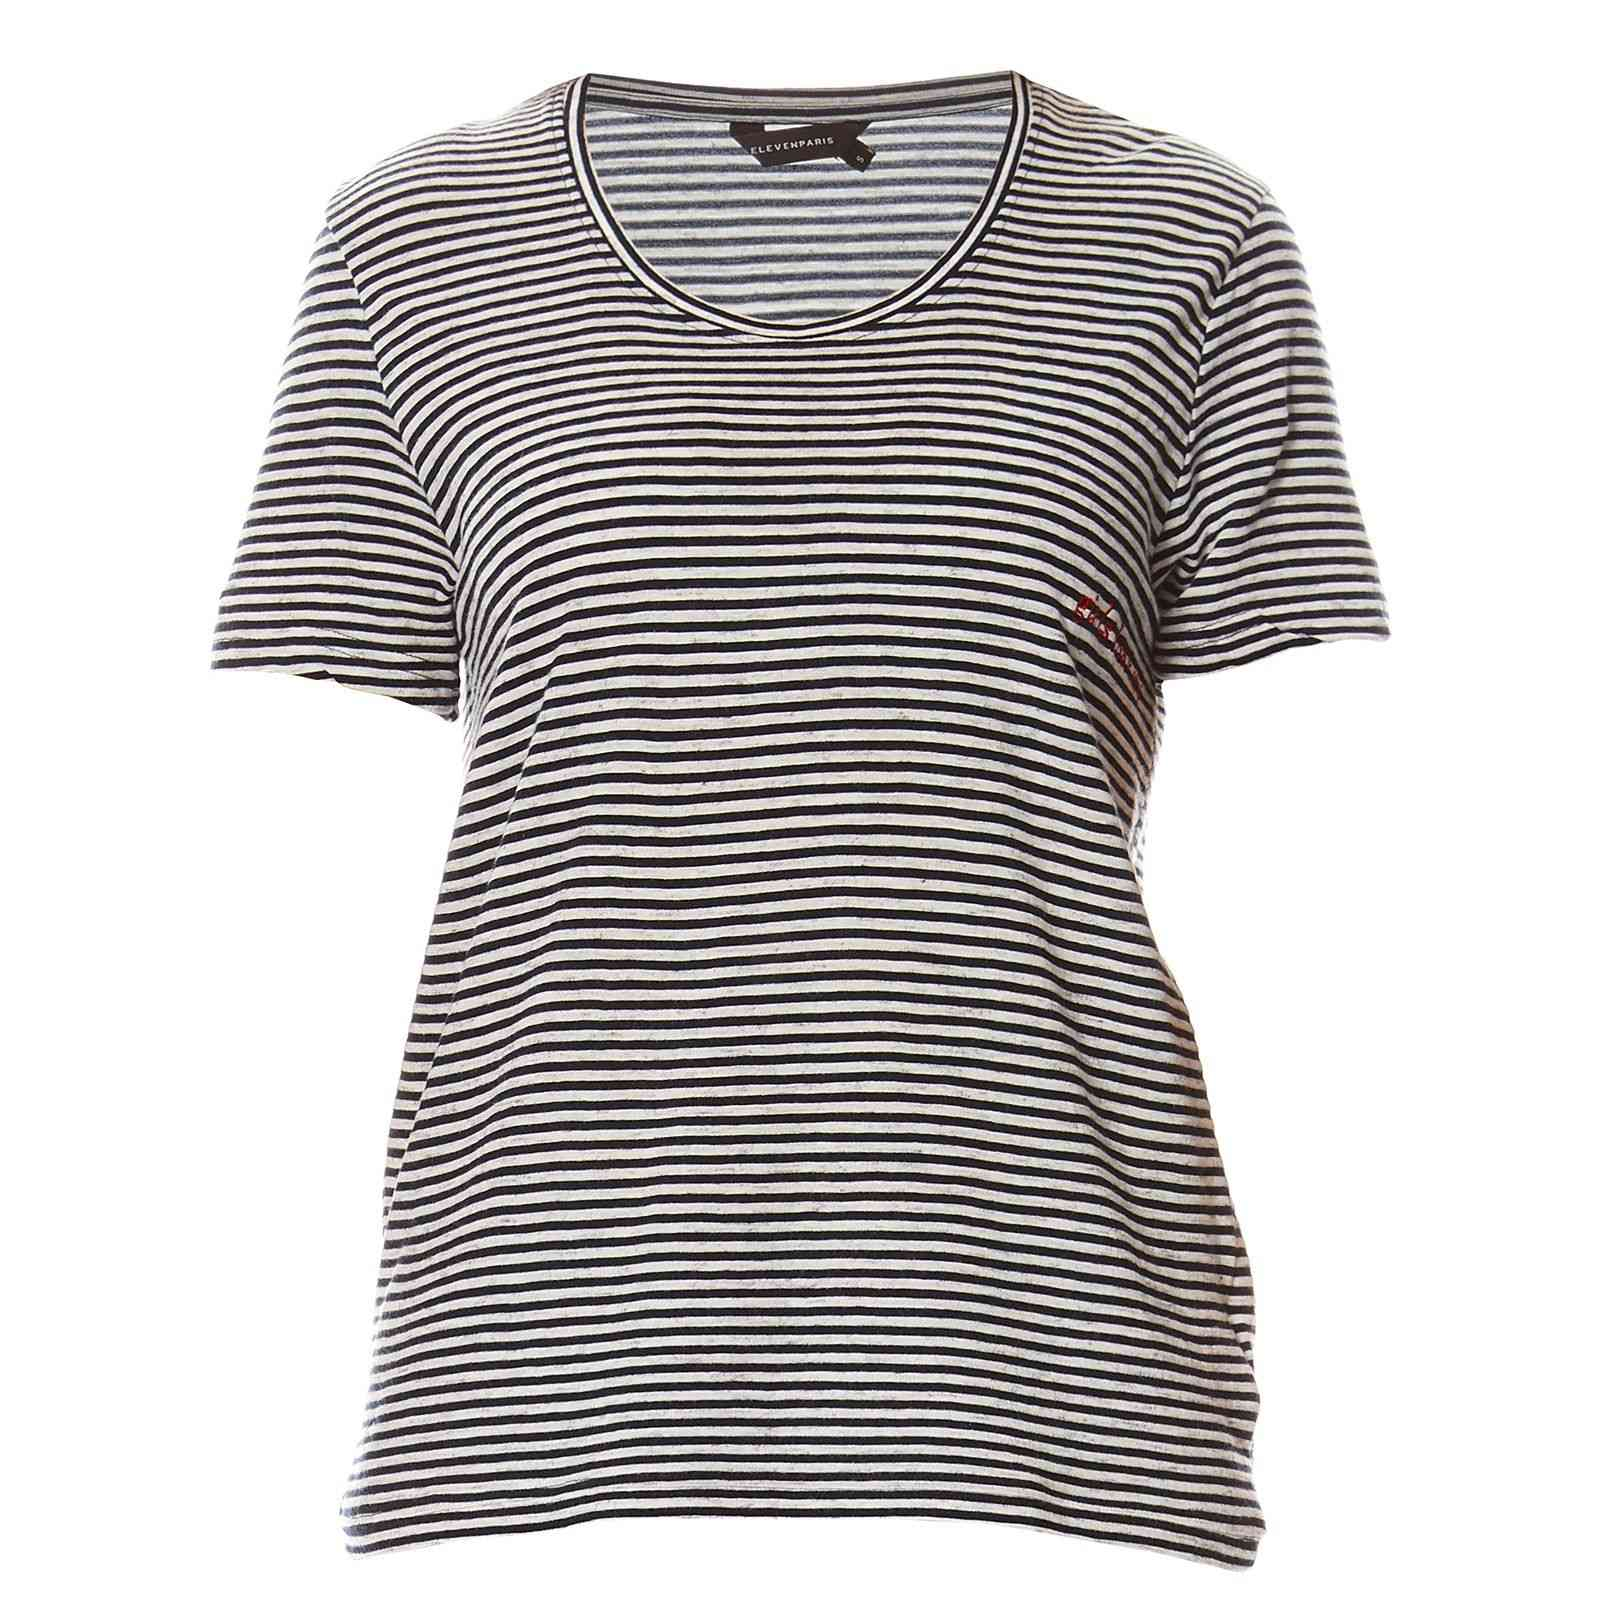 Eleven Paris T-shirt - rayé